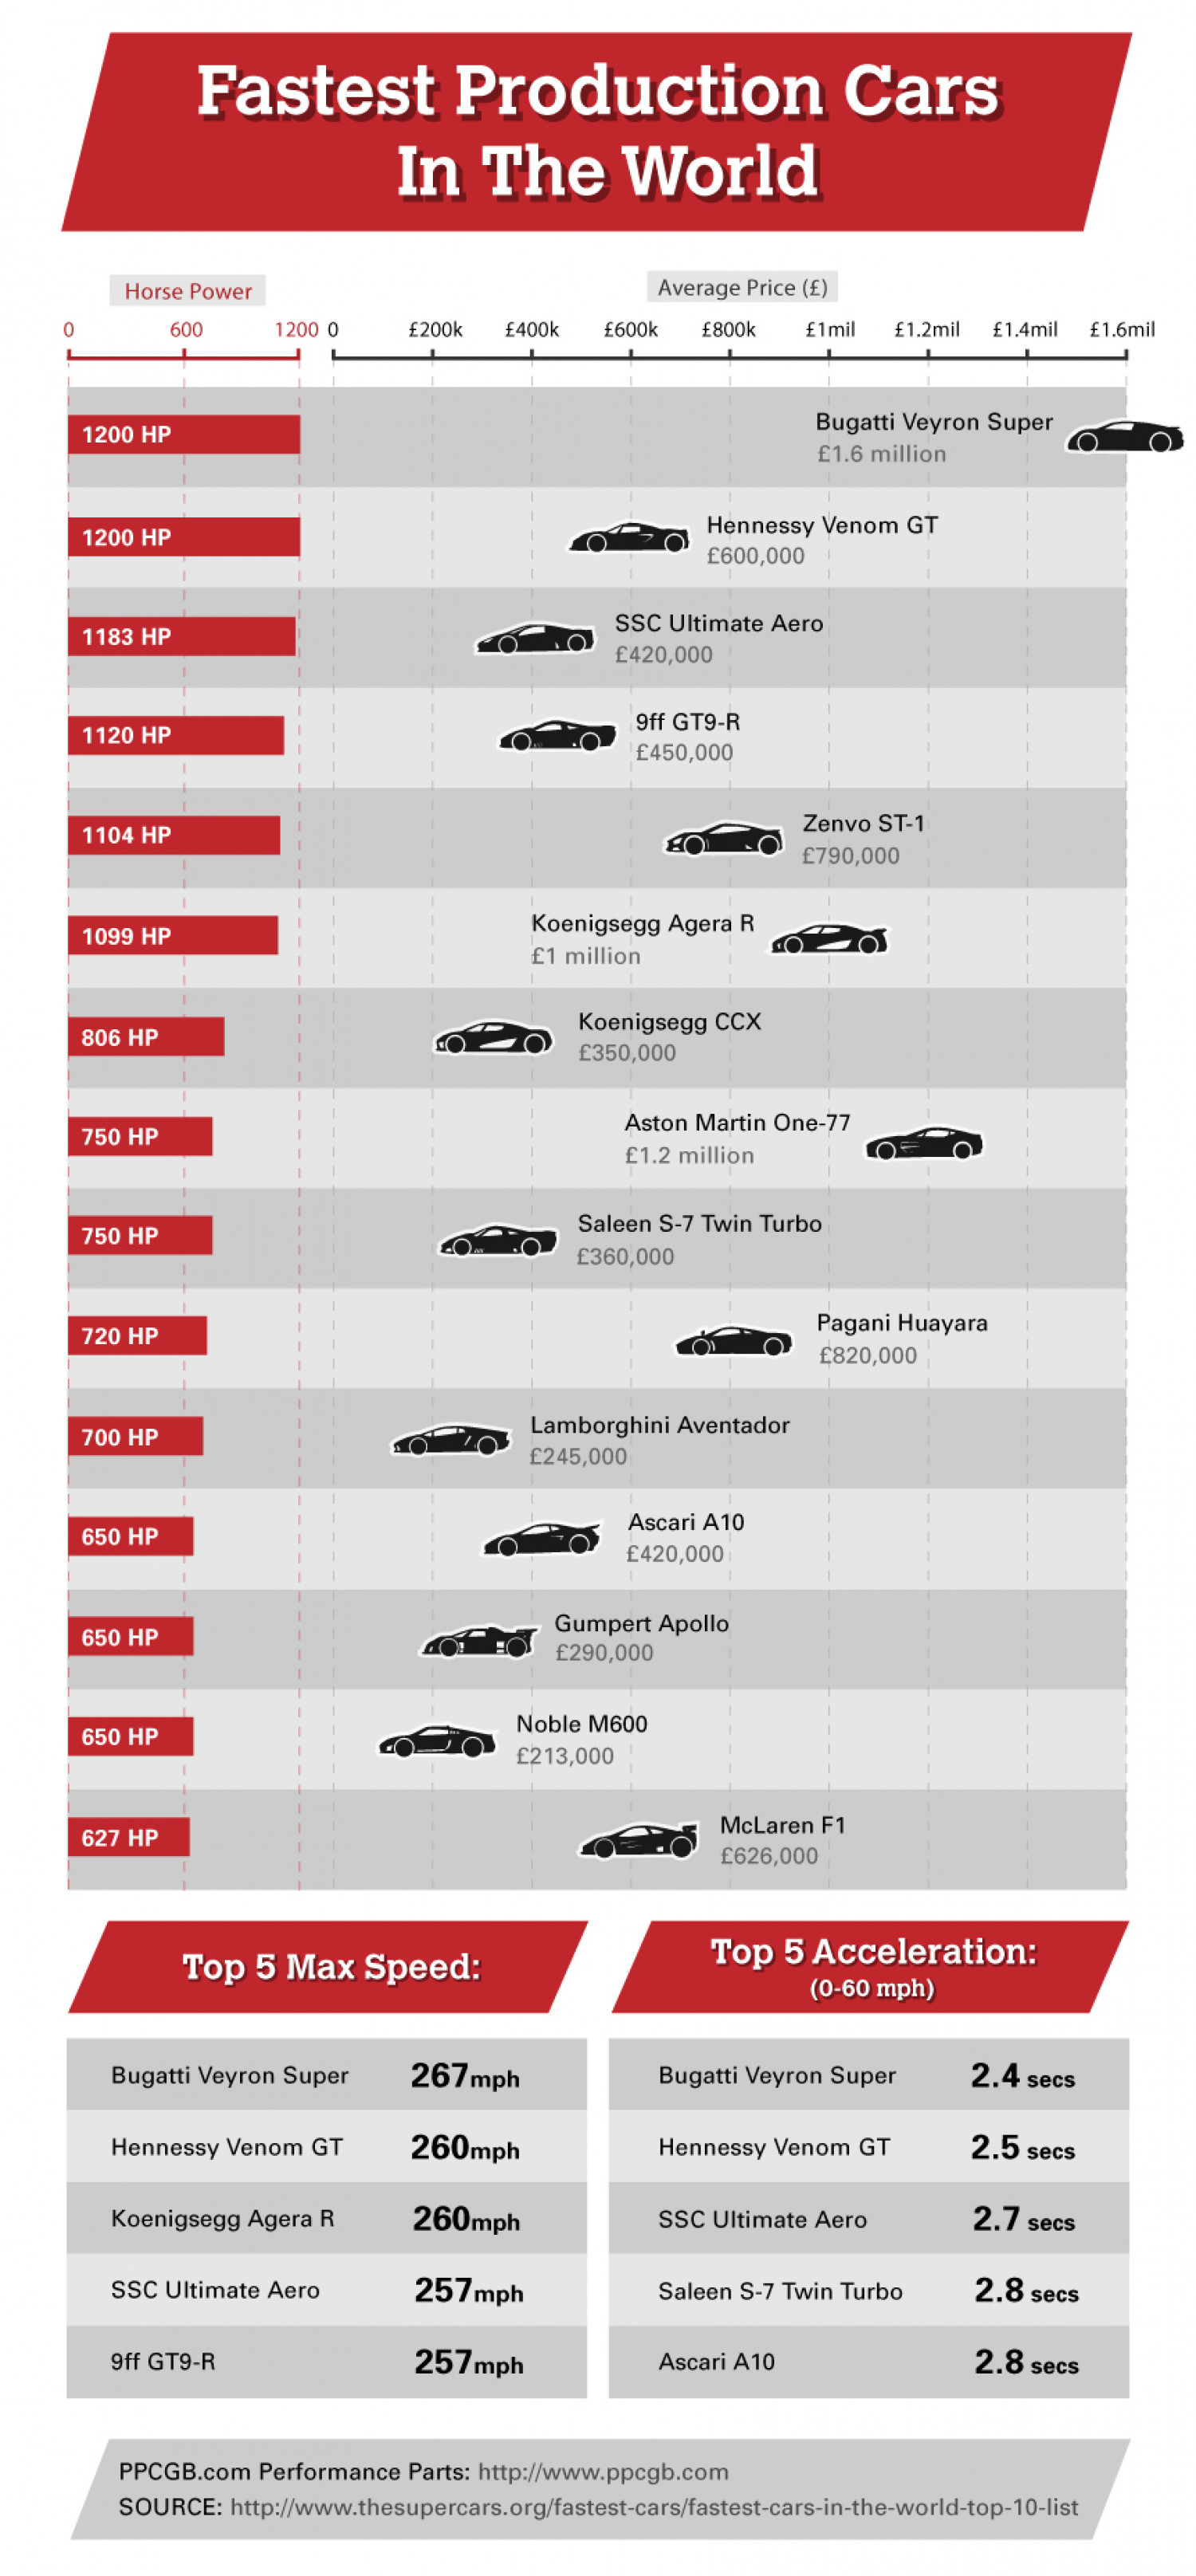 Fastest Production Cars In The World Infographic